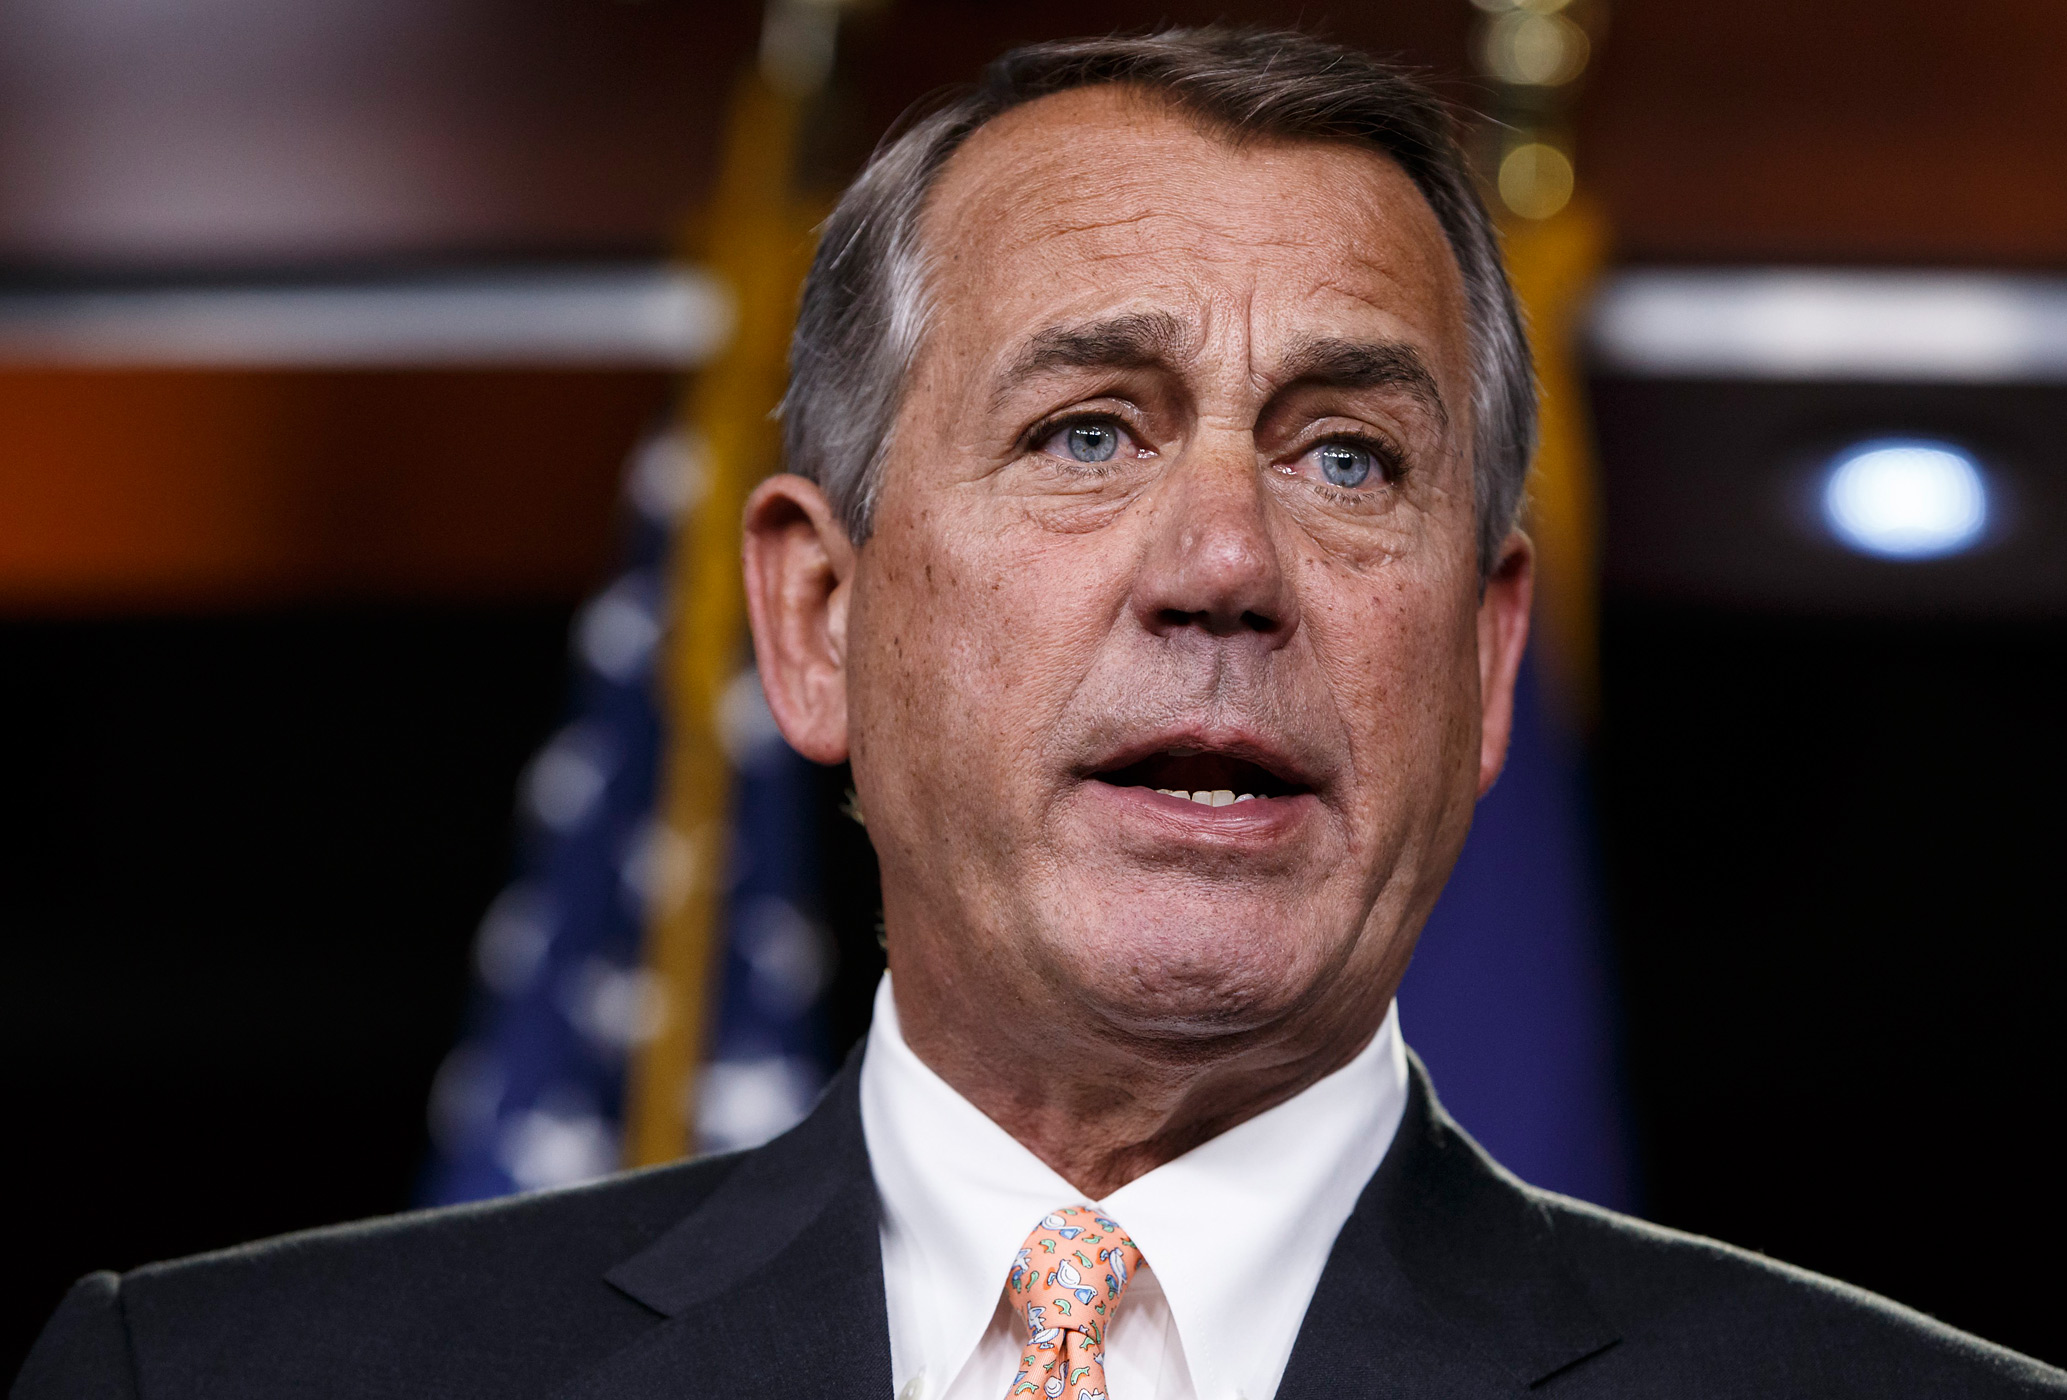 Speaker of the House John Boehner responds to reporters about the impasse over passing the Homeland Security budget because of Republican efforts to block President Barack Obama's executive actions on immigration, at the Capitol in Washington on Feb. 26, 2015.